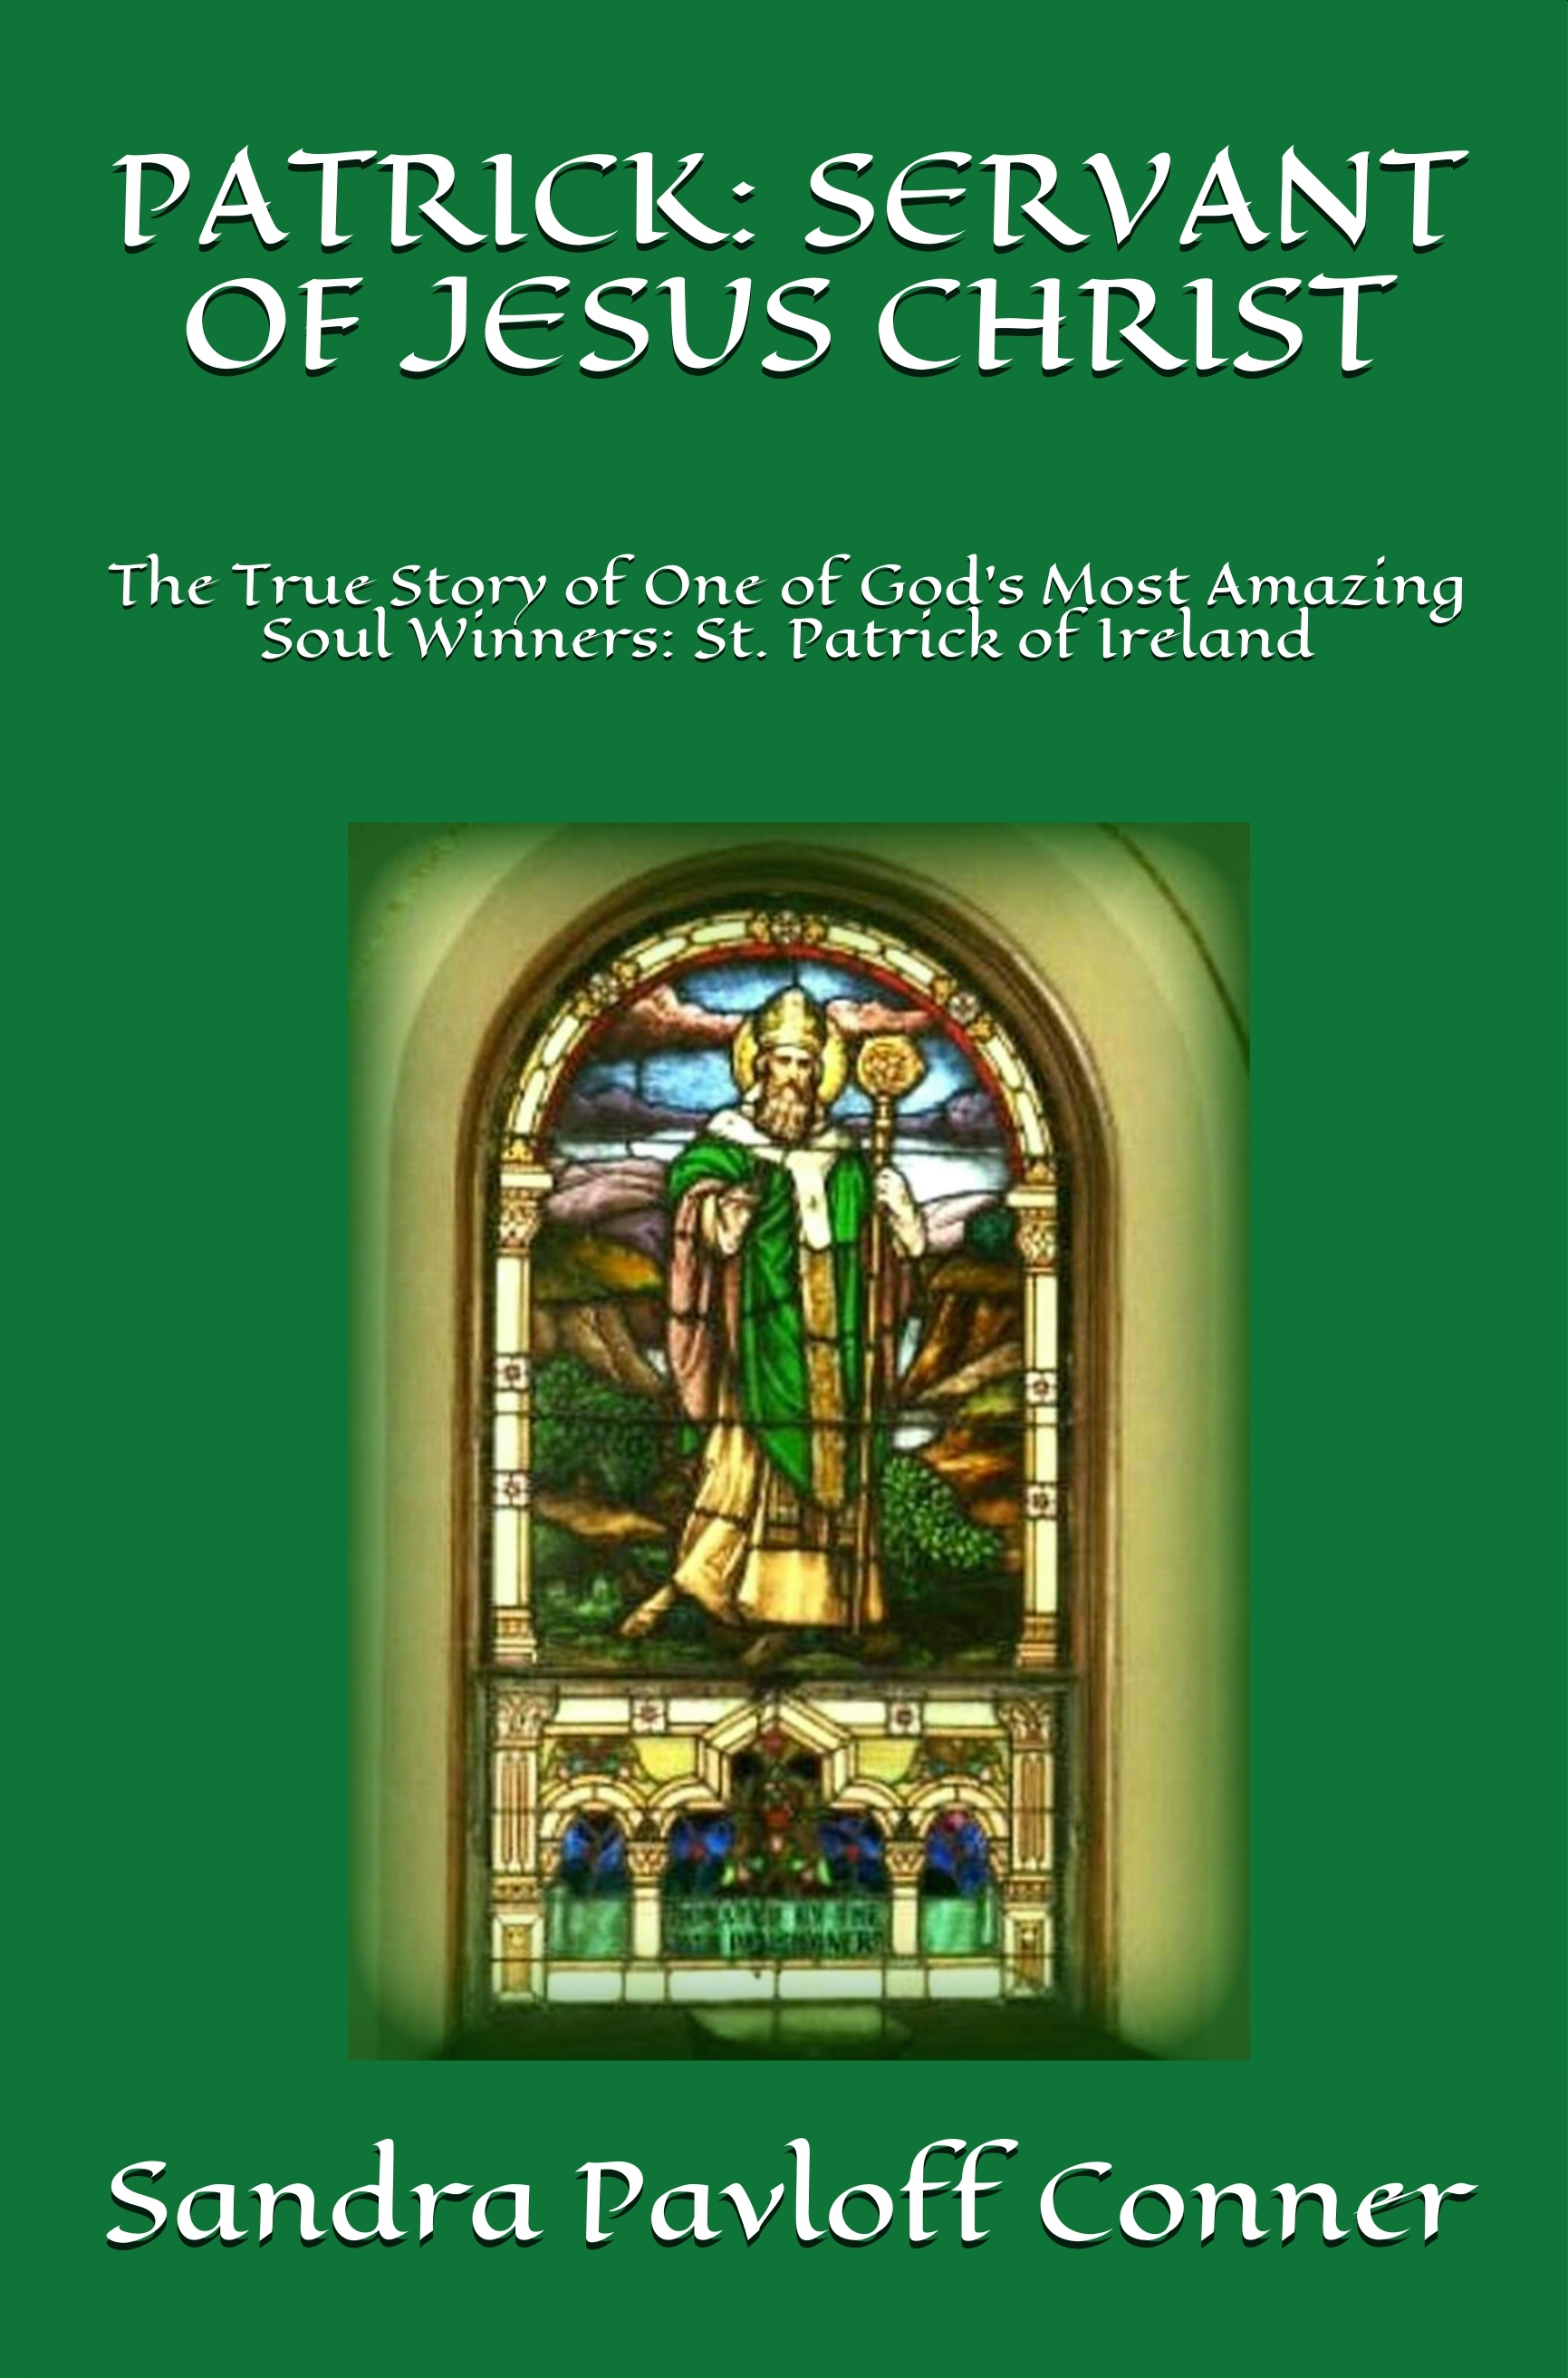 ST. PATRICK BOOK AMAZON FRONT COVER BRIGHTER